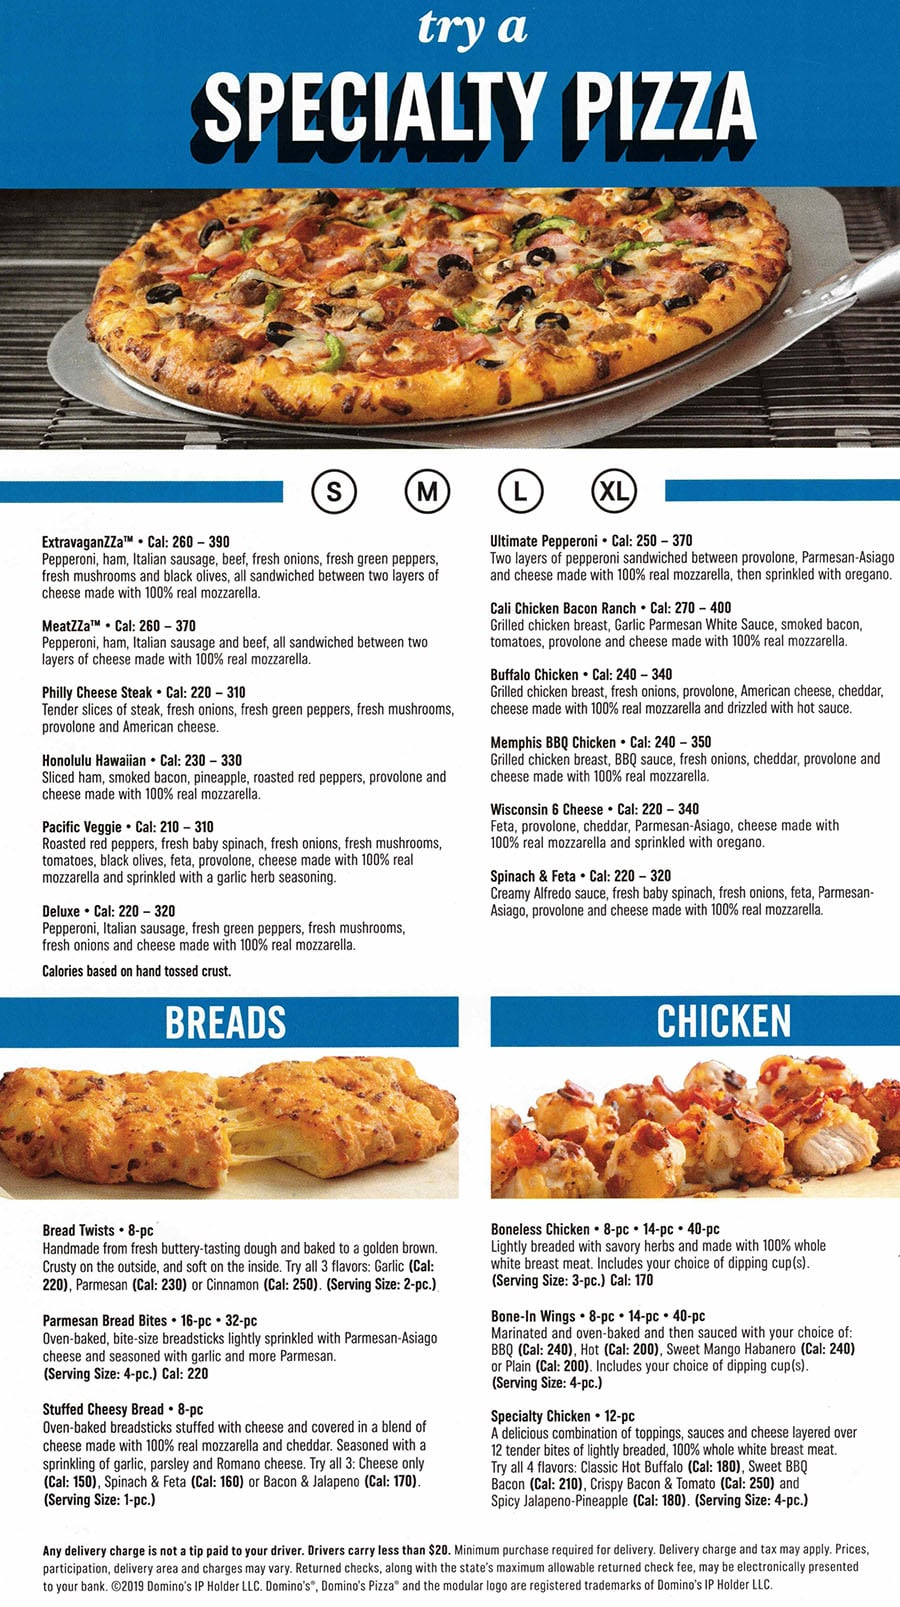 Domino's Pizza menu - specialty pizza